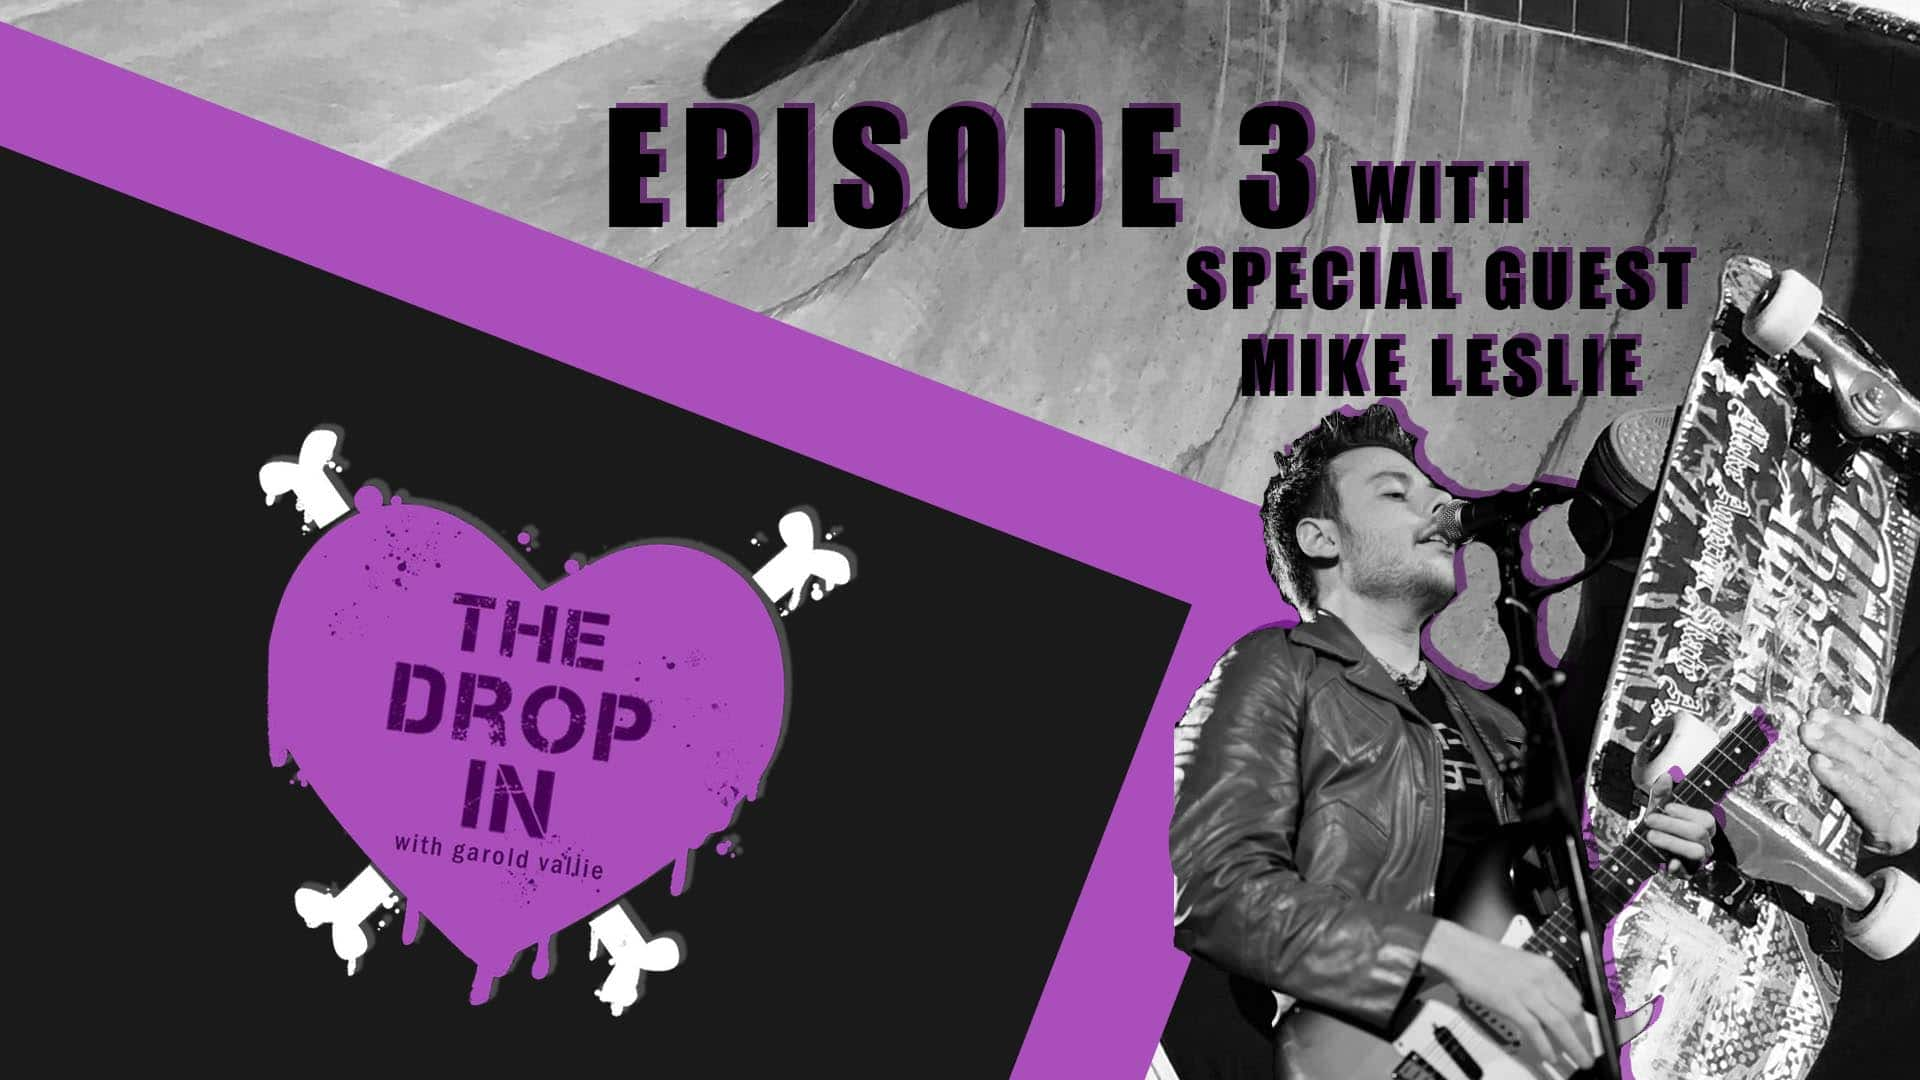 The Drop In with Garold Vallie - Episode 3